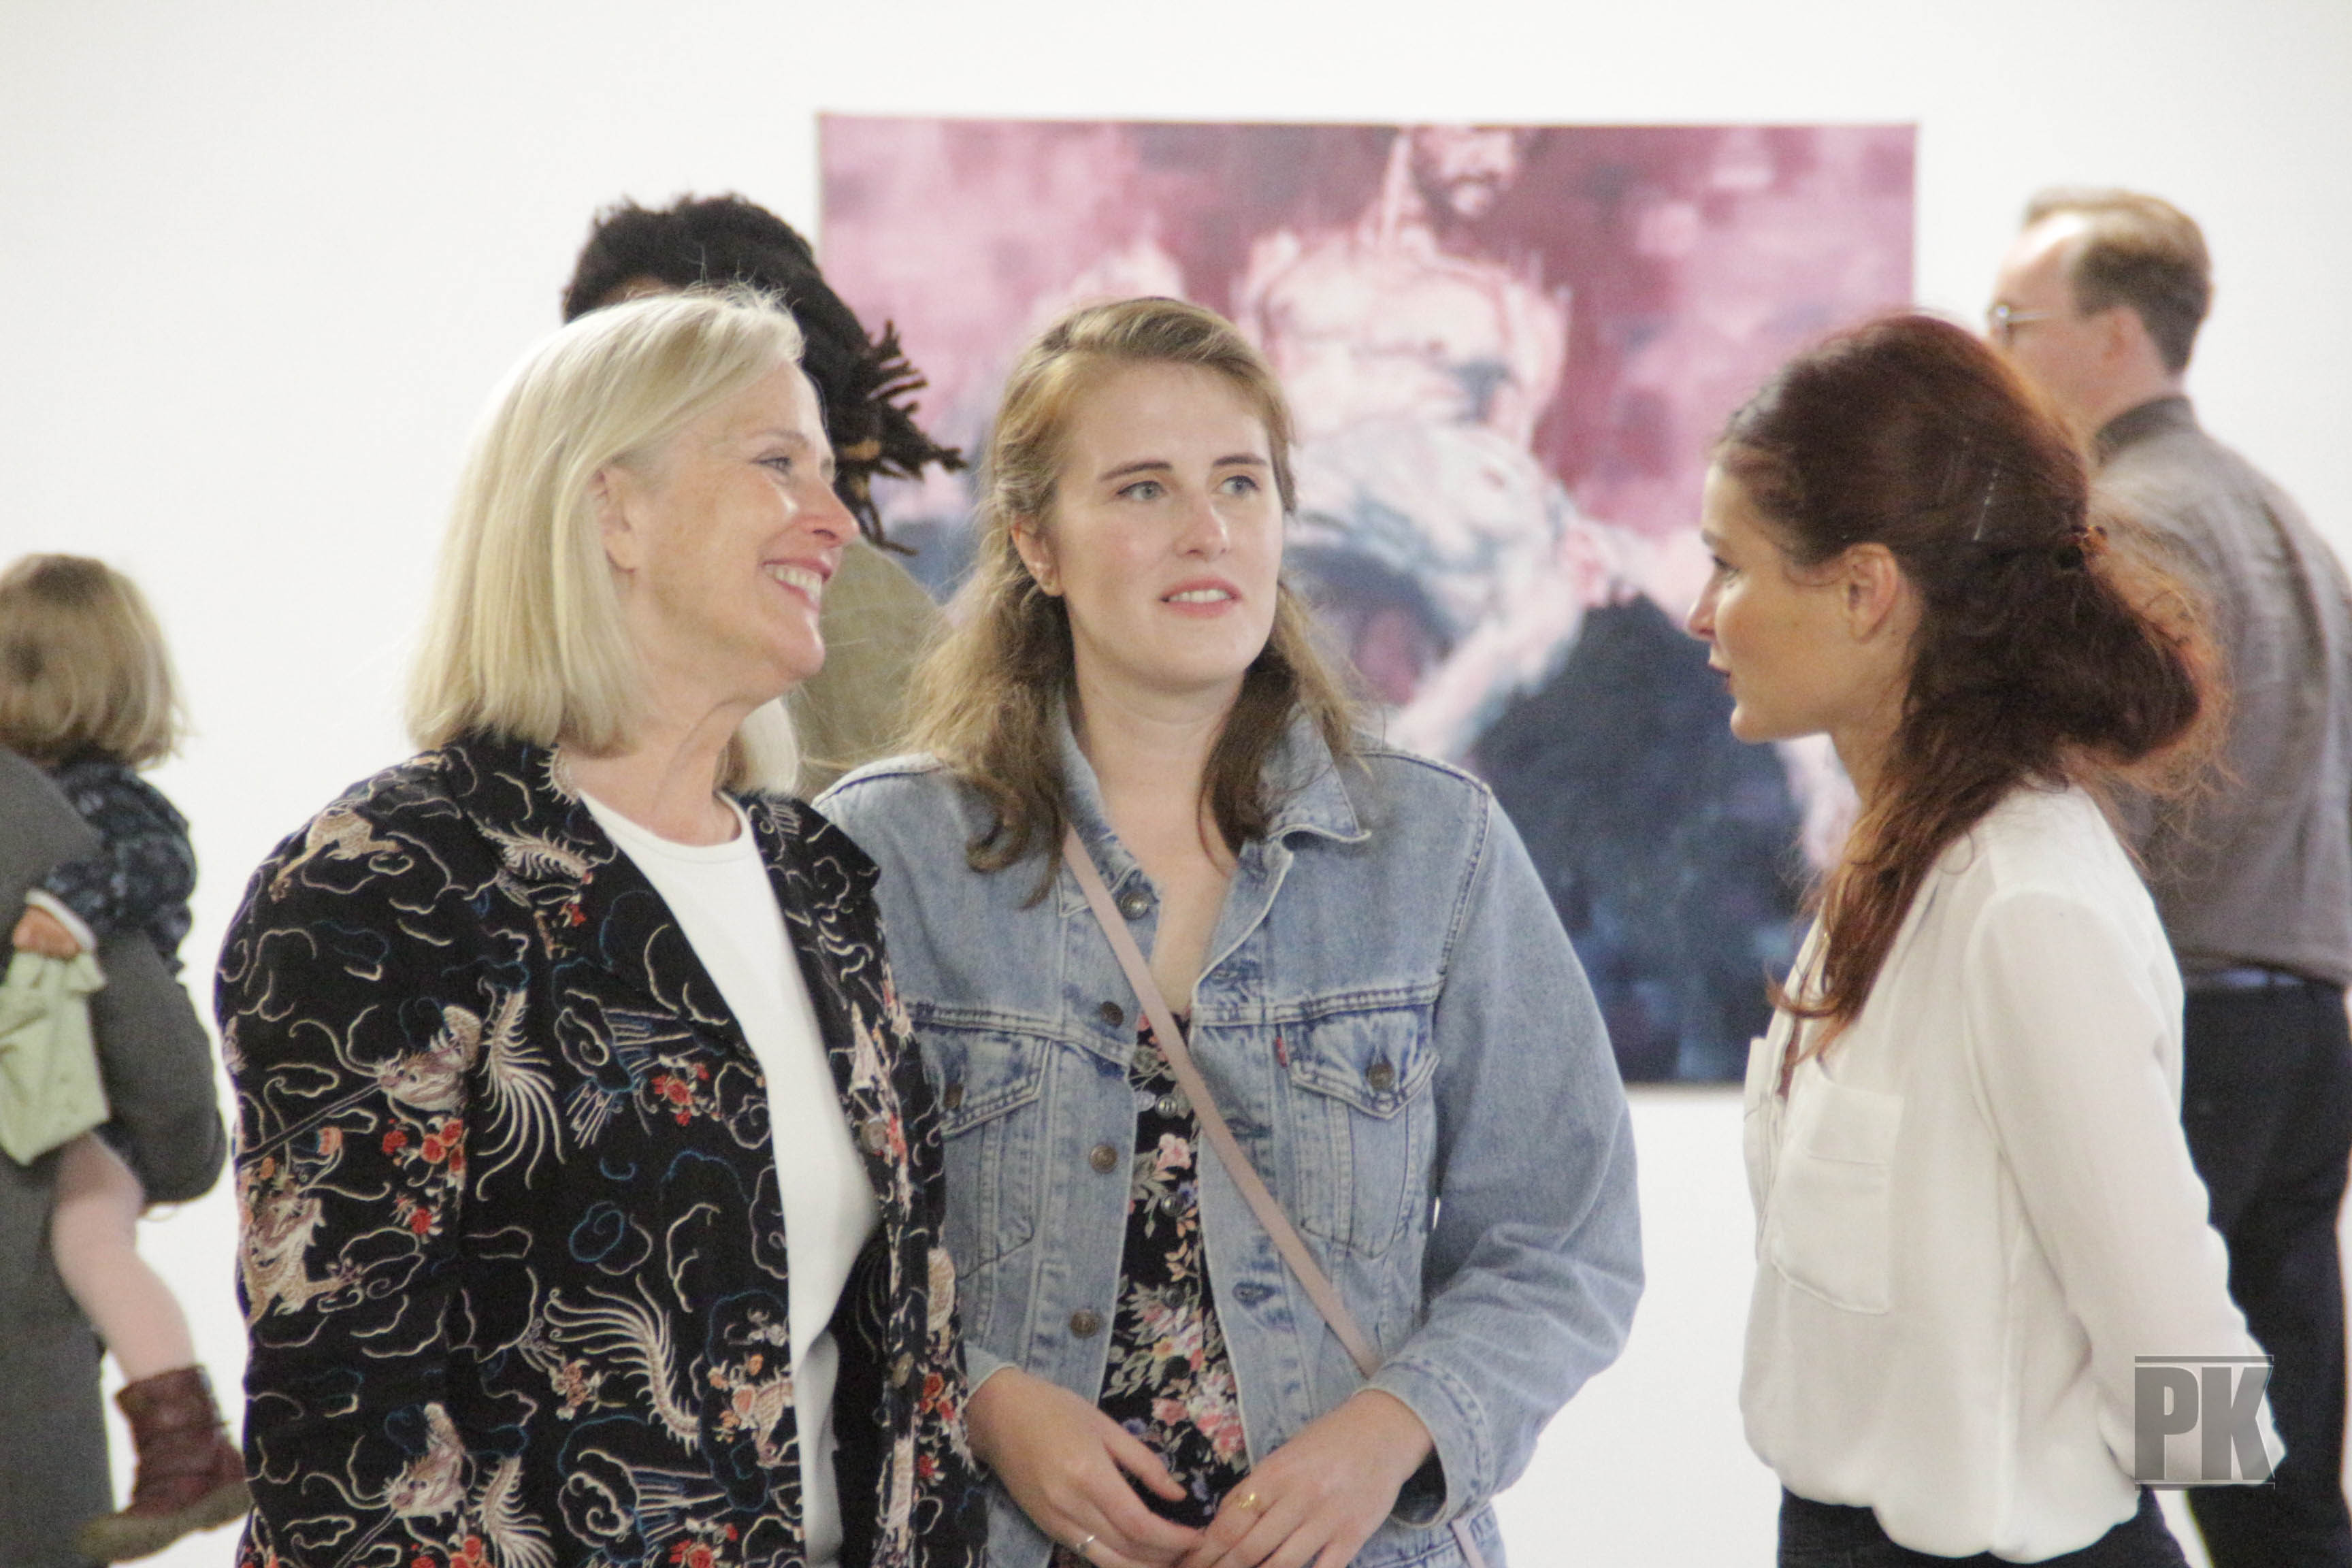 Grateful-Park-vernissage-20-Sept-2019-PILOTENKUECHE-International-Art-Program-Leipzig-Germany-photo-Stanley-Louis-for-PK